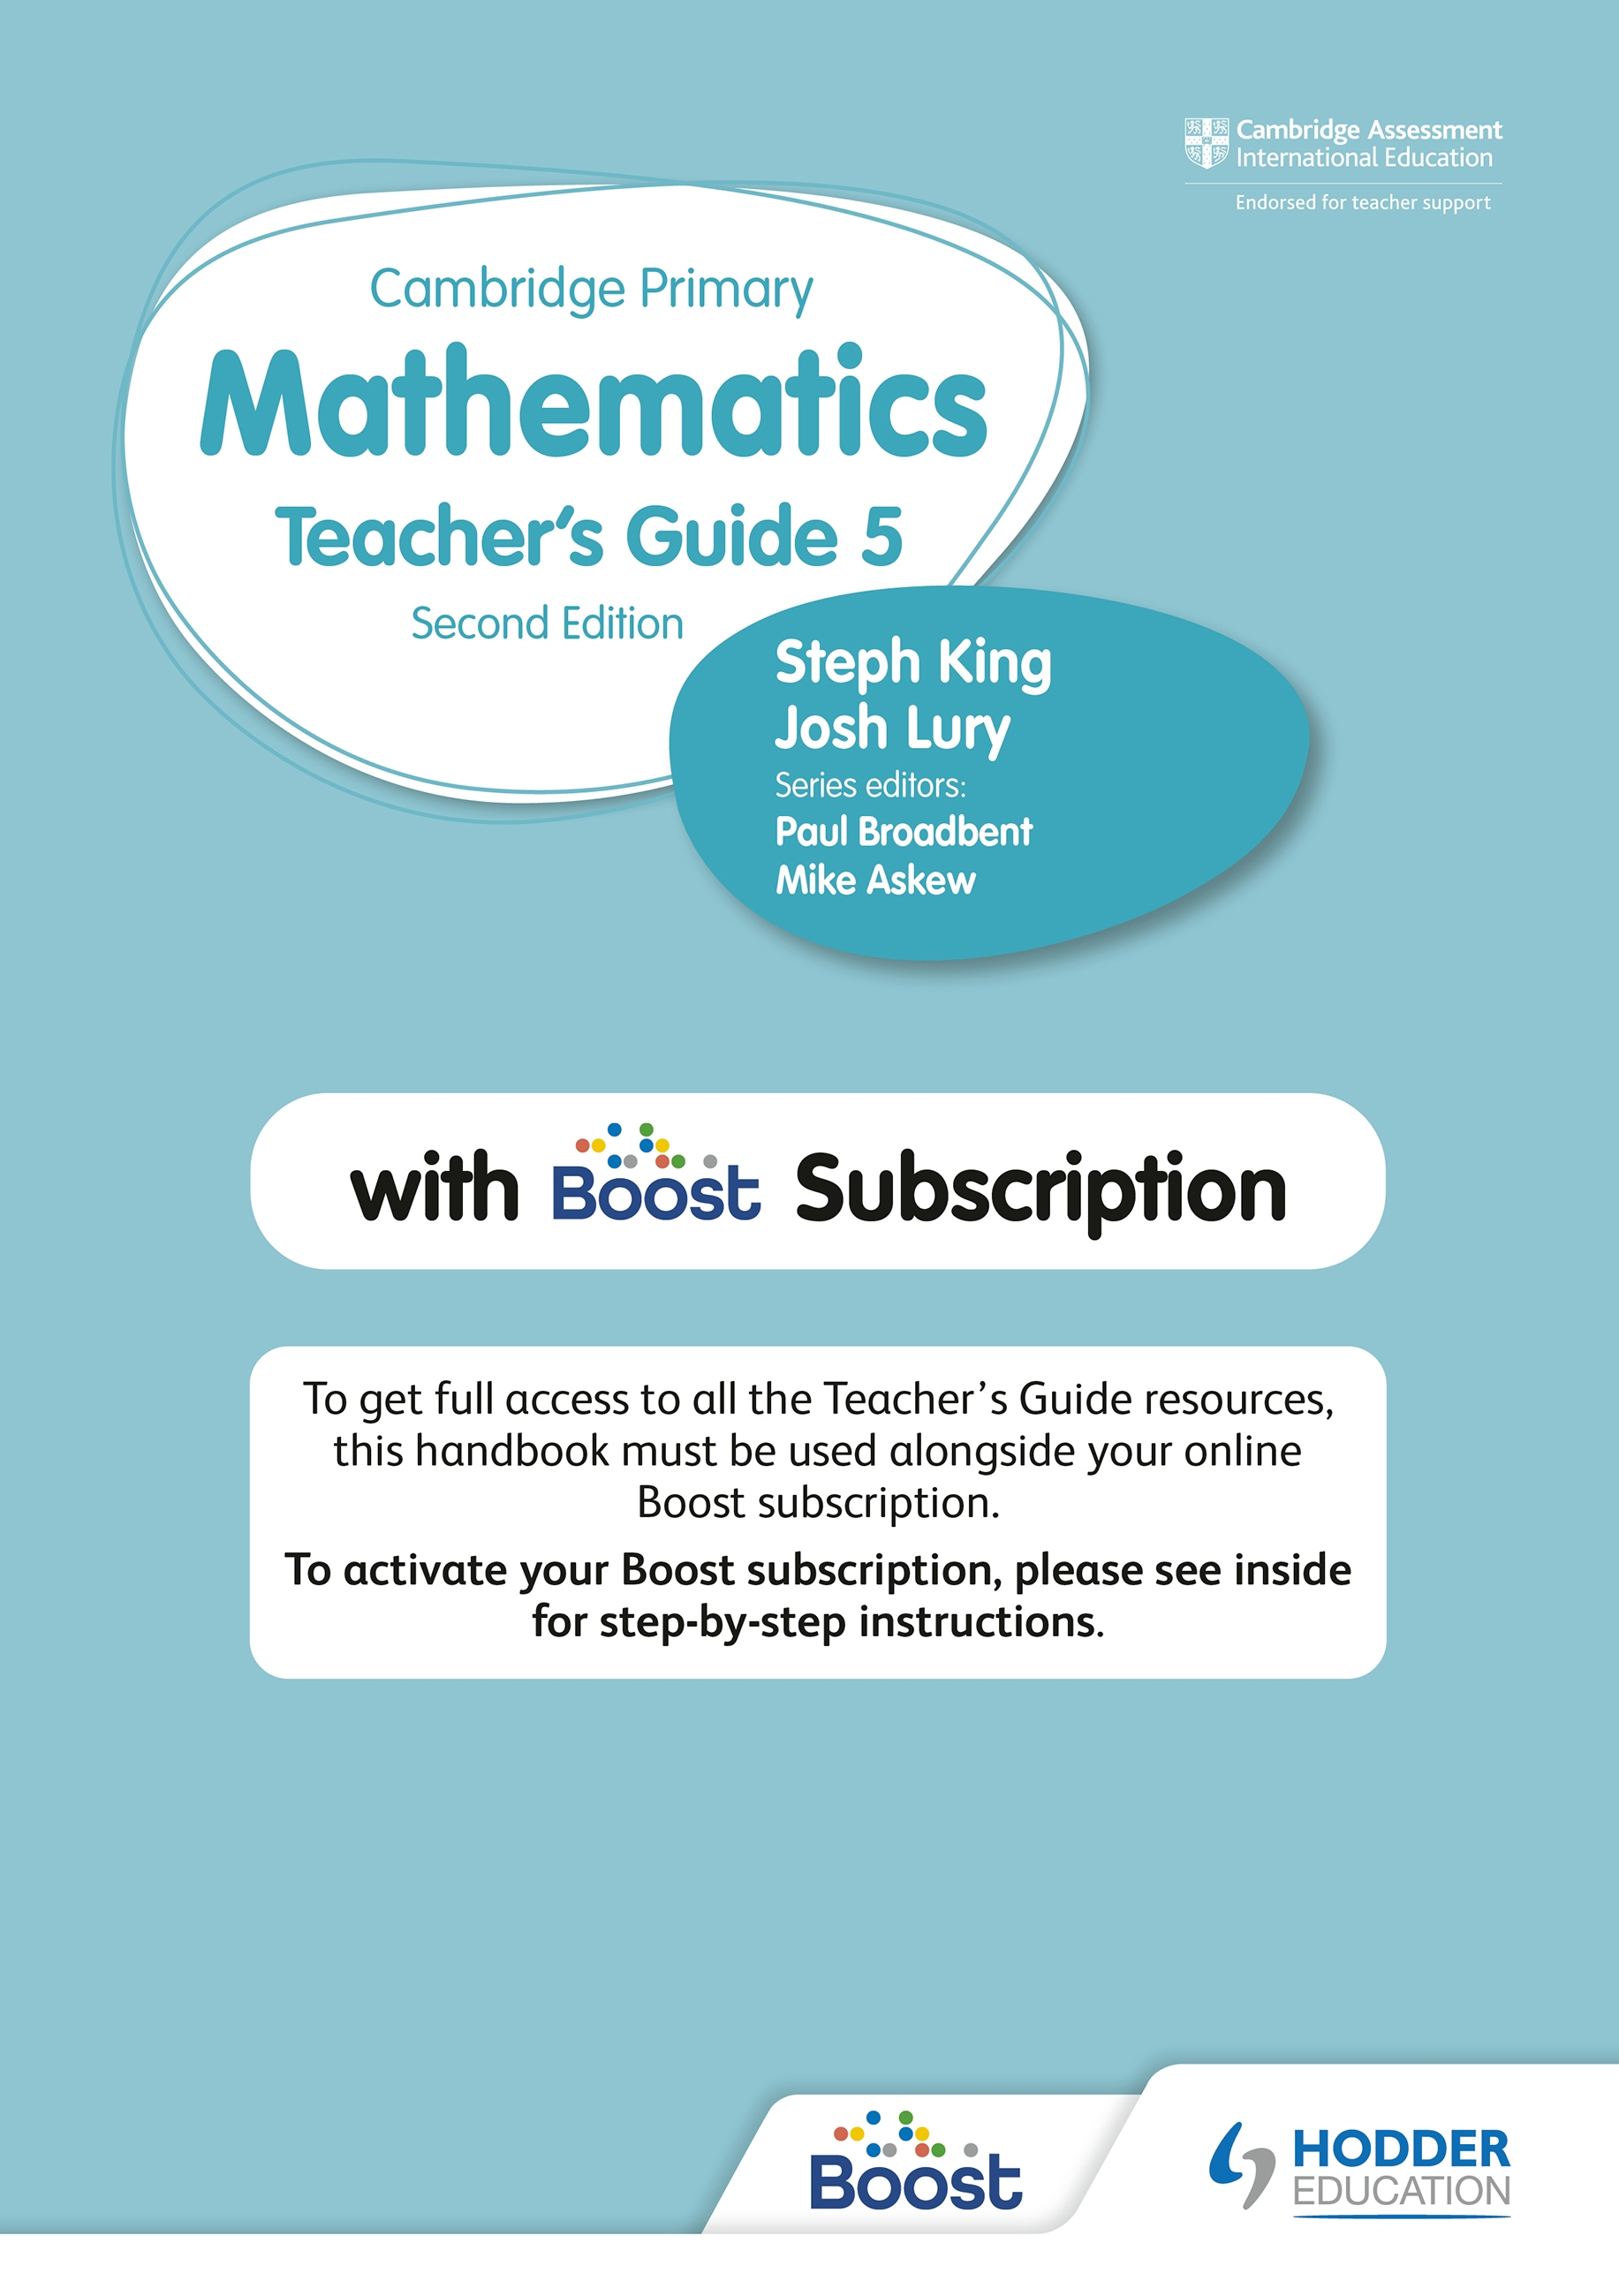 Cambridge Primary Mathematics Teacher's Guide 5 with Boost Subscription